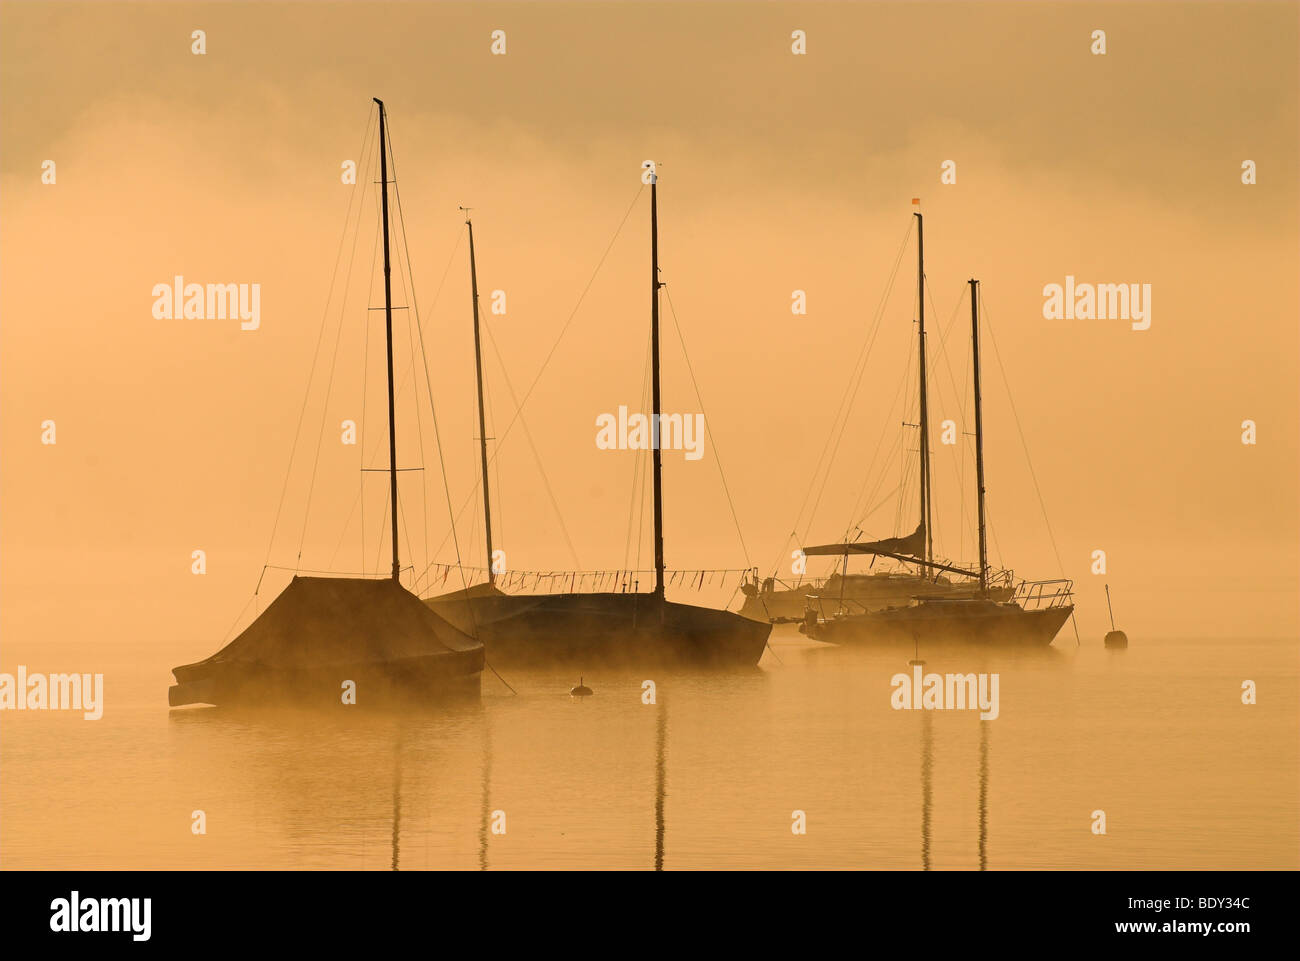 Morning fog above Lake Starnberg and silhouettes of boats at Seeshaupt, Bavaria, Germany, Europe Stock Photo